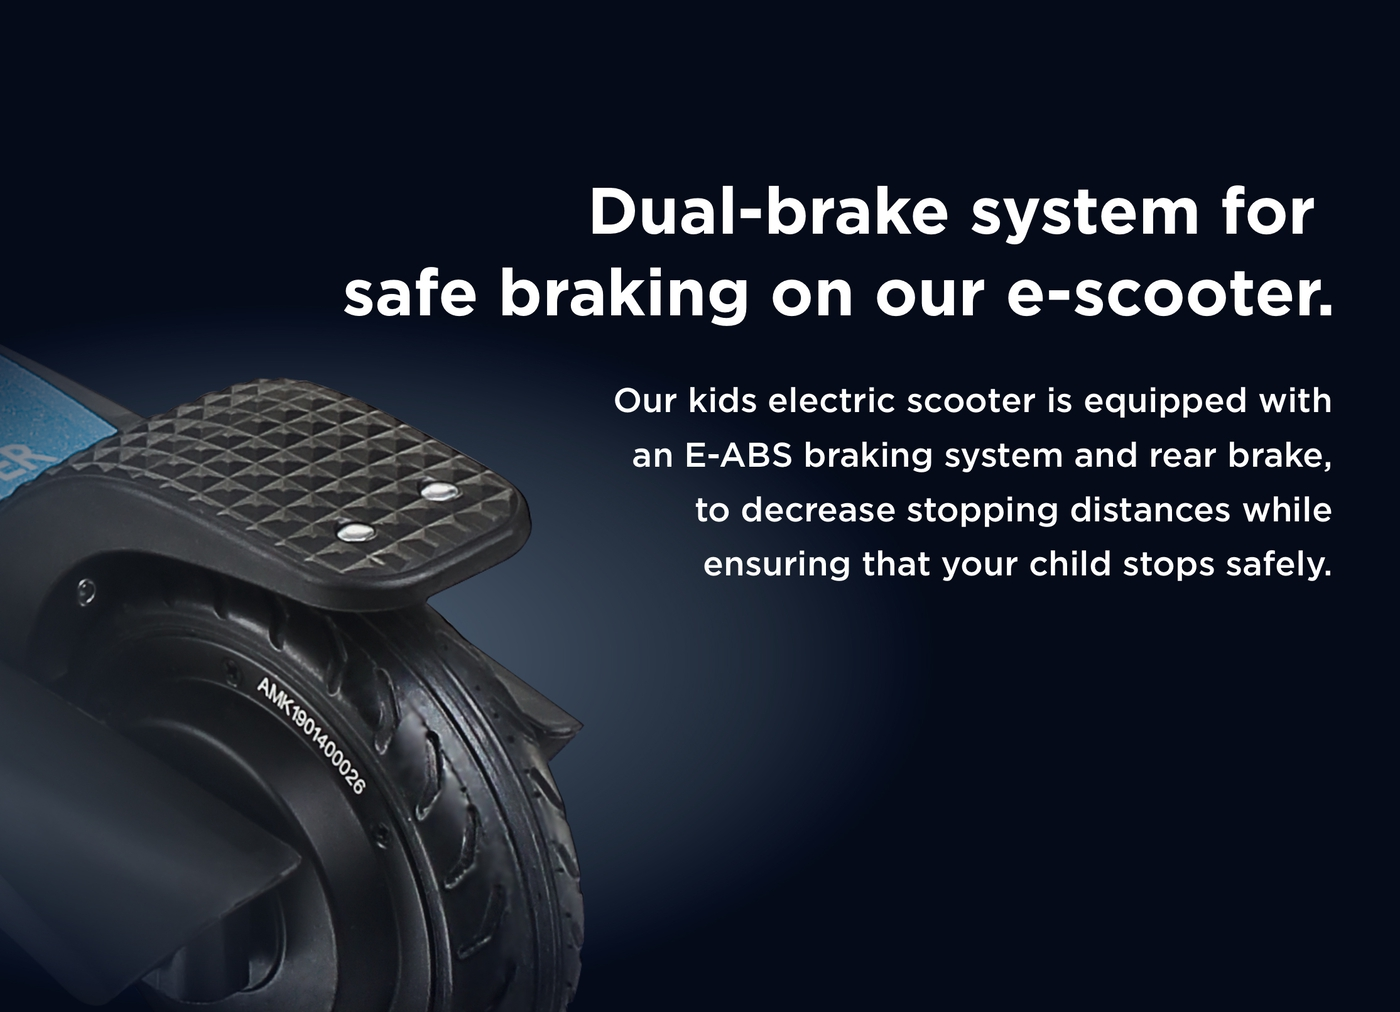 Dual-brake system for safe braking on our e-scooter.